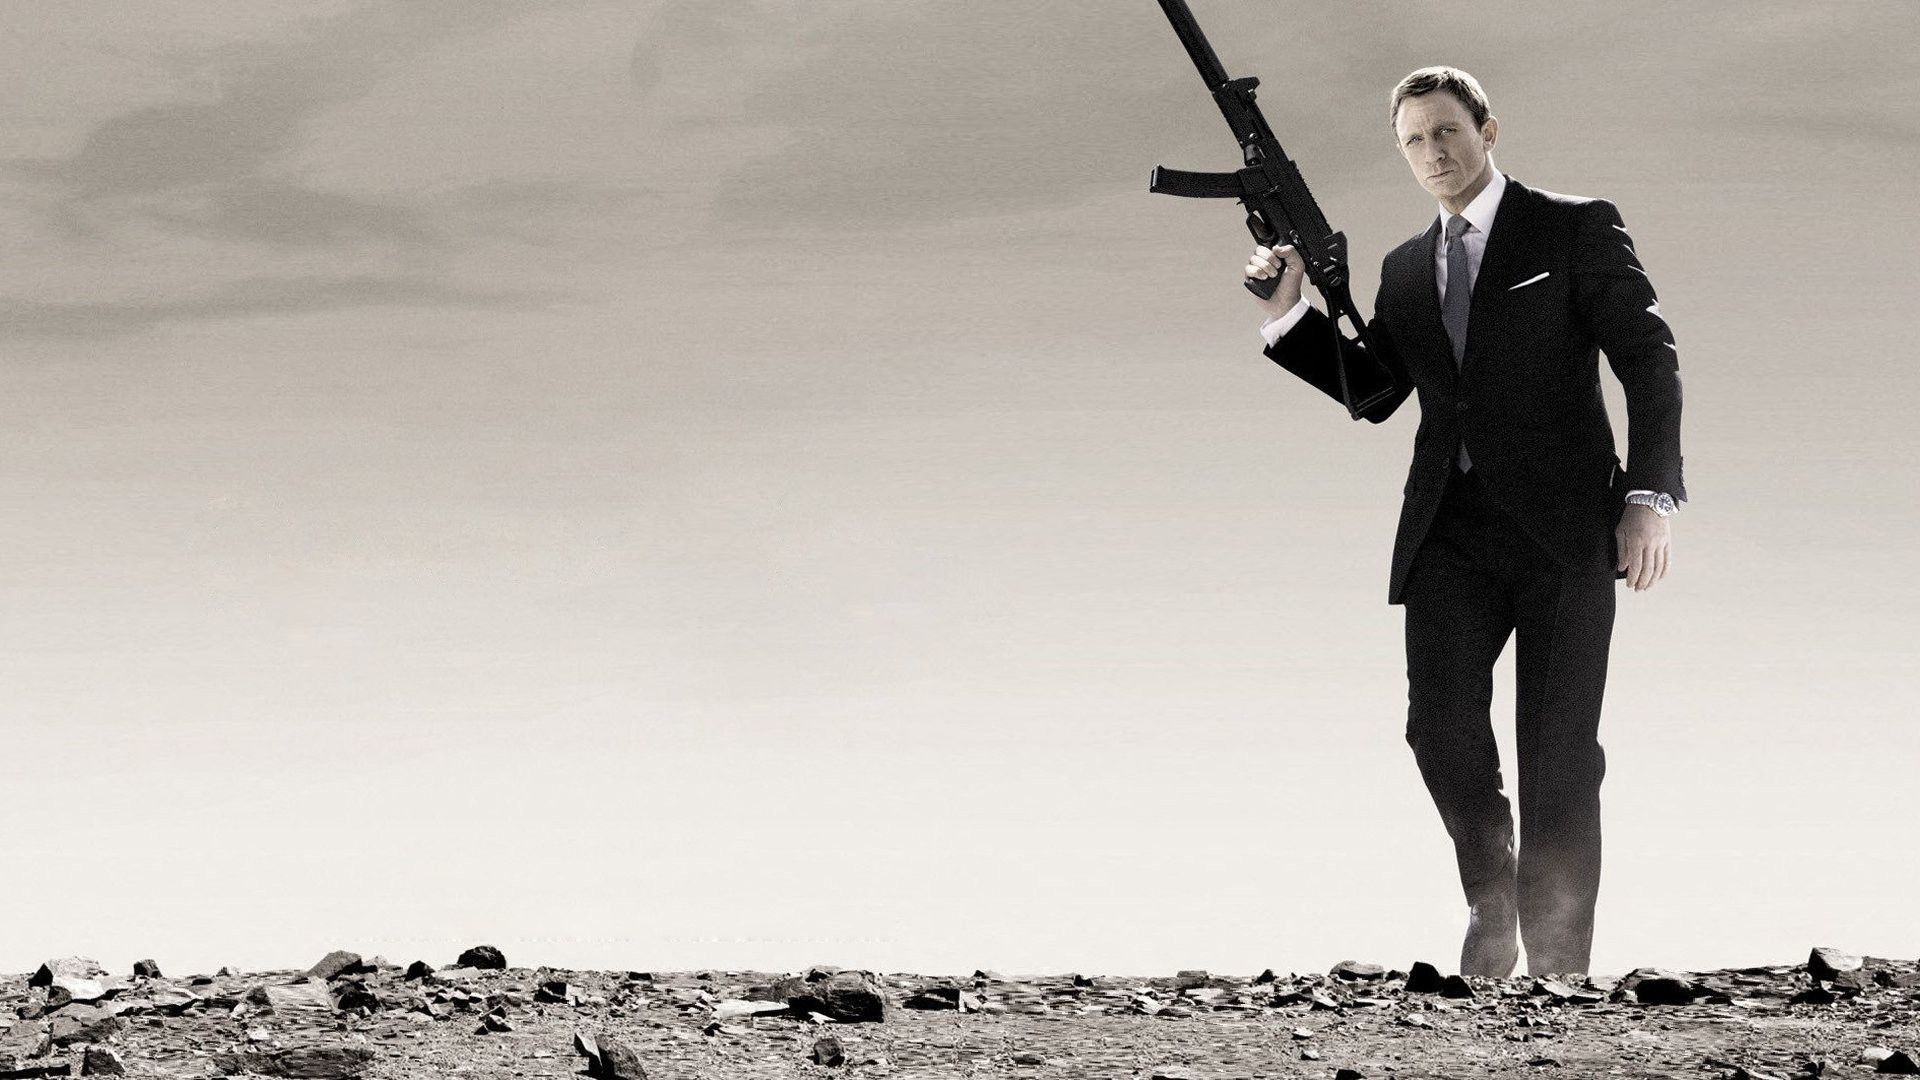 72 James Bond Wallpapers on WallpaperPlay 1920x1080